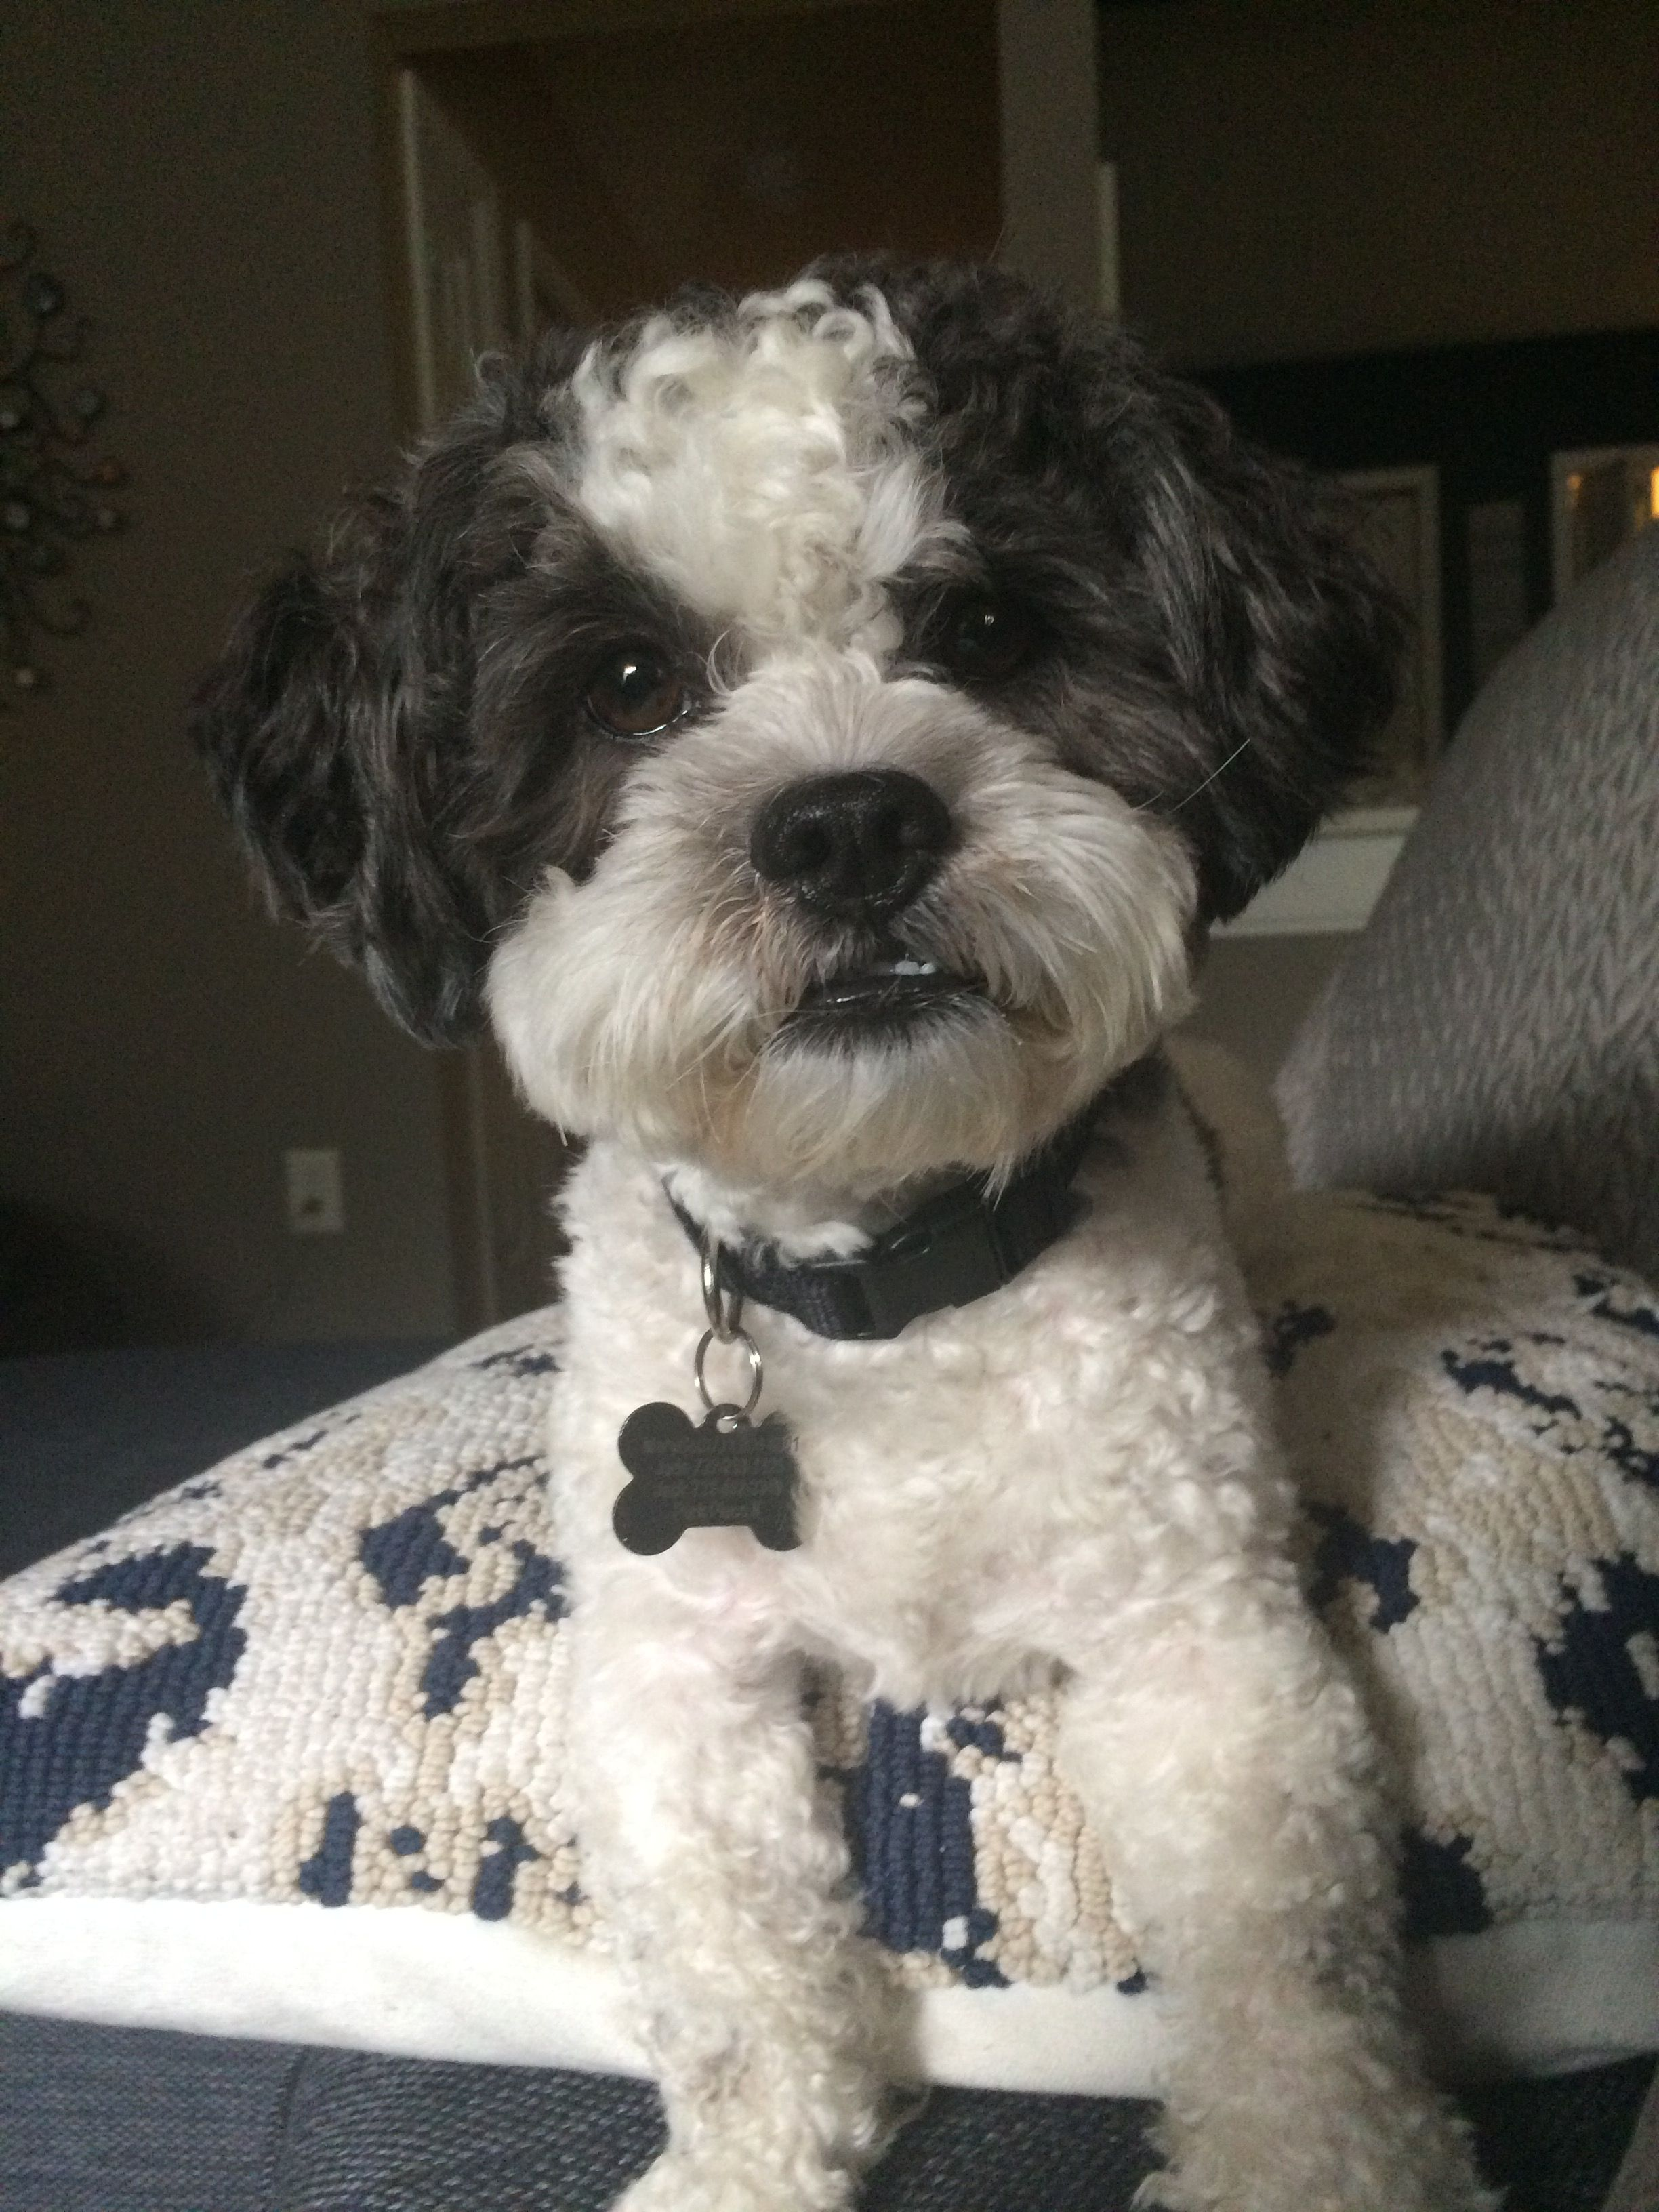 Pin By Mary Beth On Teddy Bear The Shihpoo Shih Poo Fur Babies Puppies